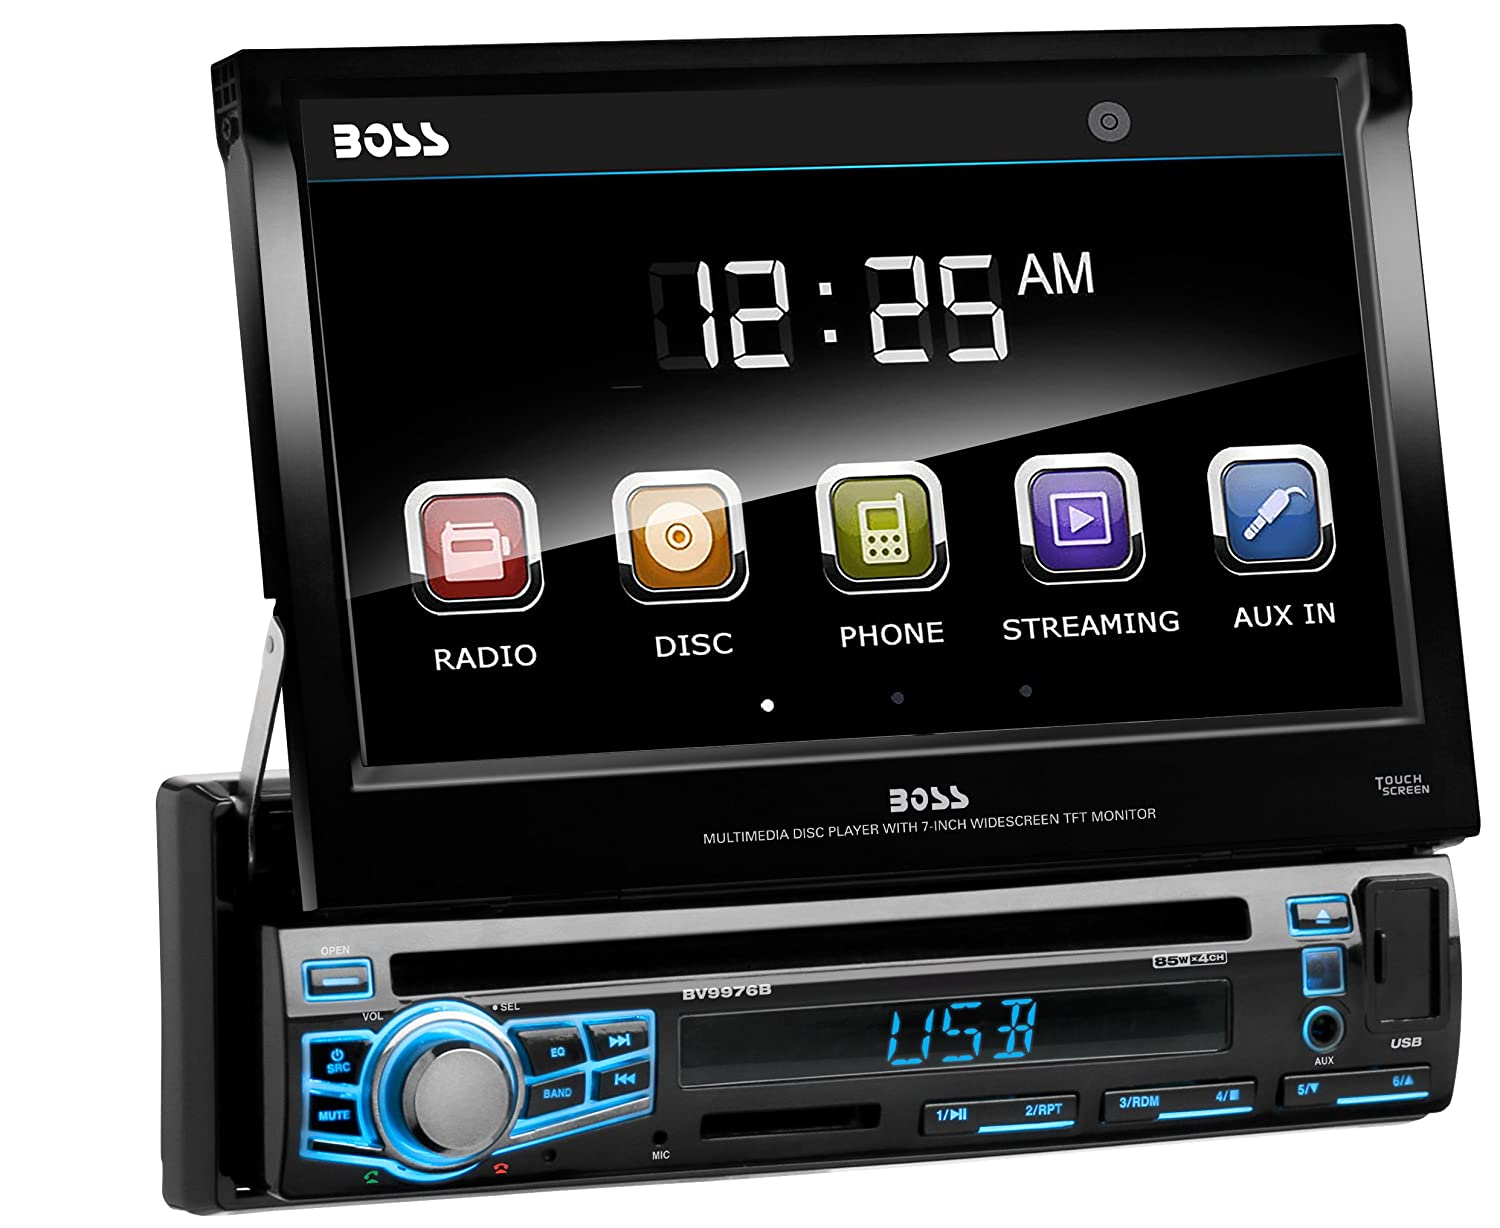 81aHQ%2BK4dBL._SL1500_ amazon com boss audio bv9976b single din, touchscreen, bluetooth big stuff 3 wiring diagram at mr168.co